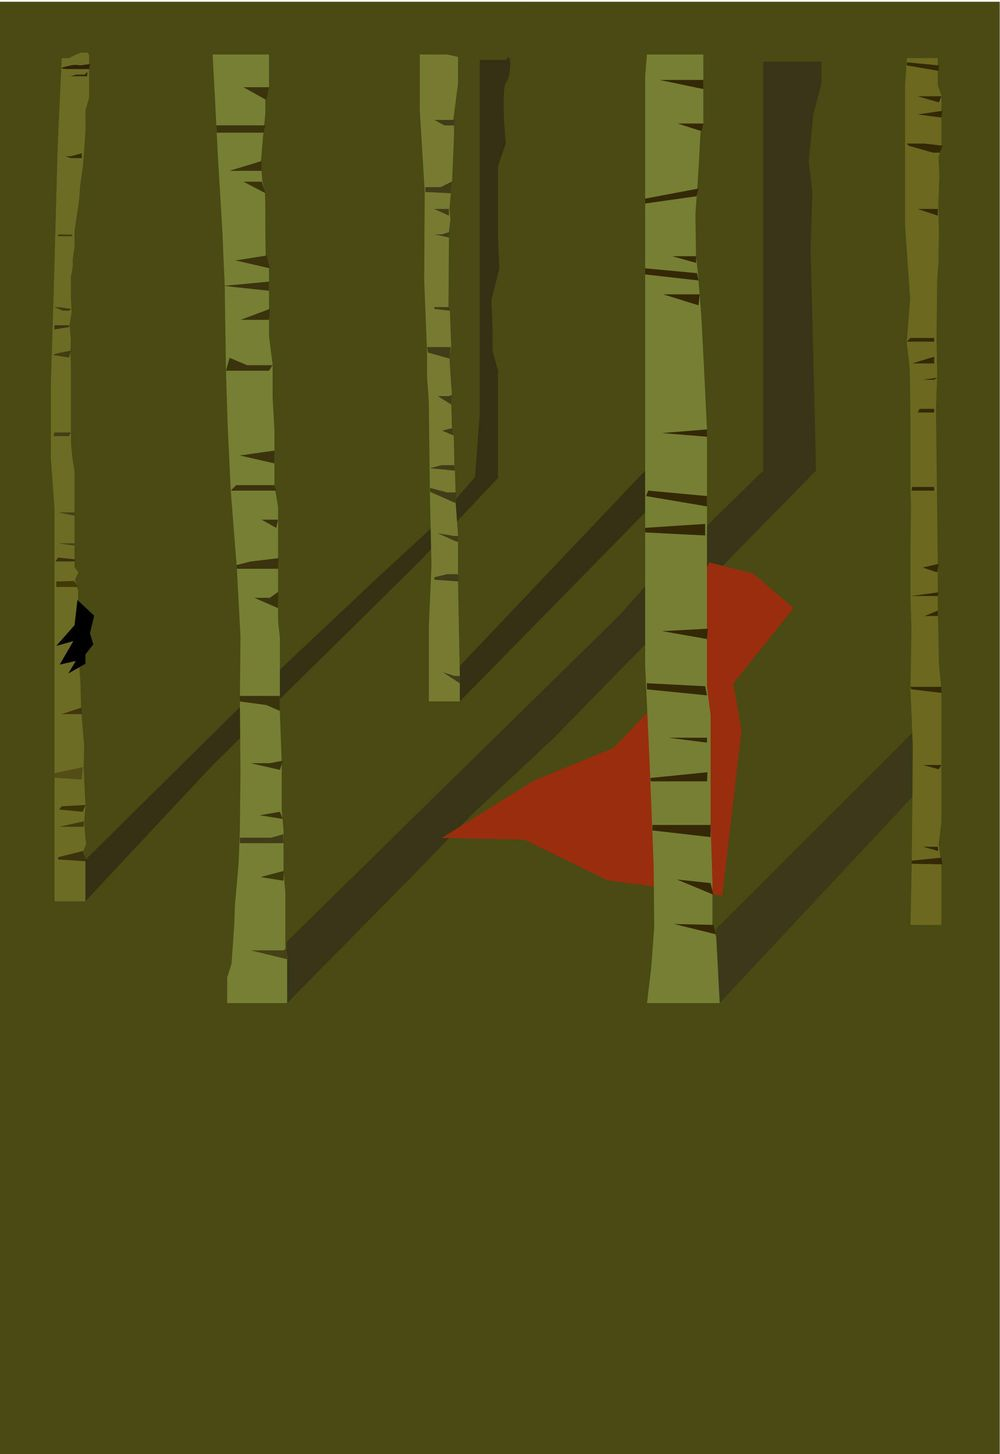 Minimalist Little Red Riding Hood - image 2 - student project